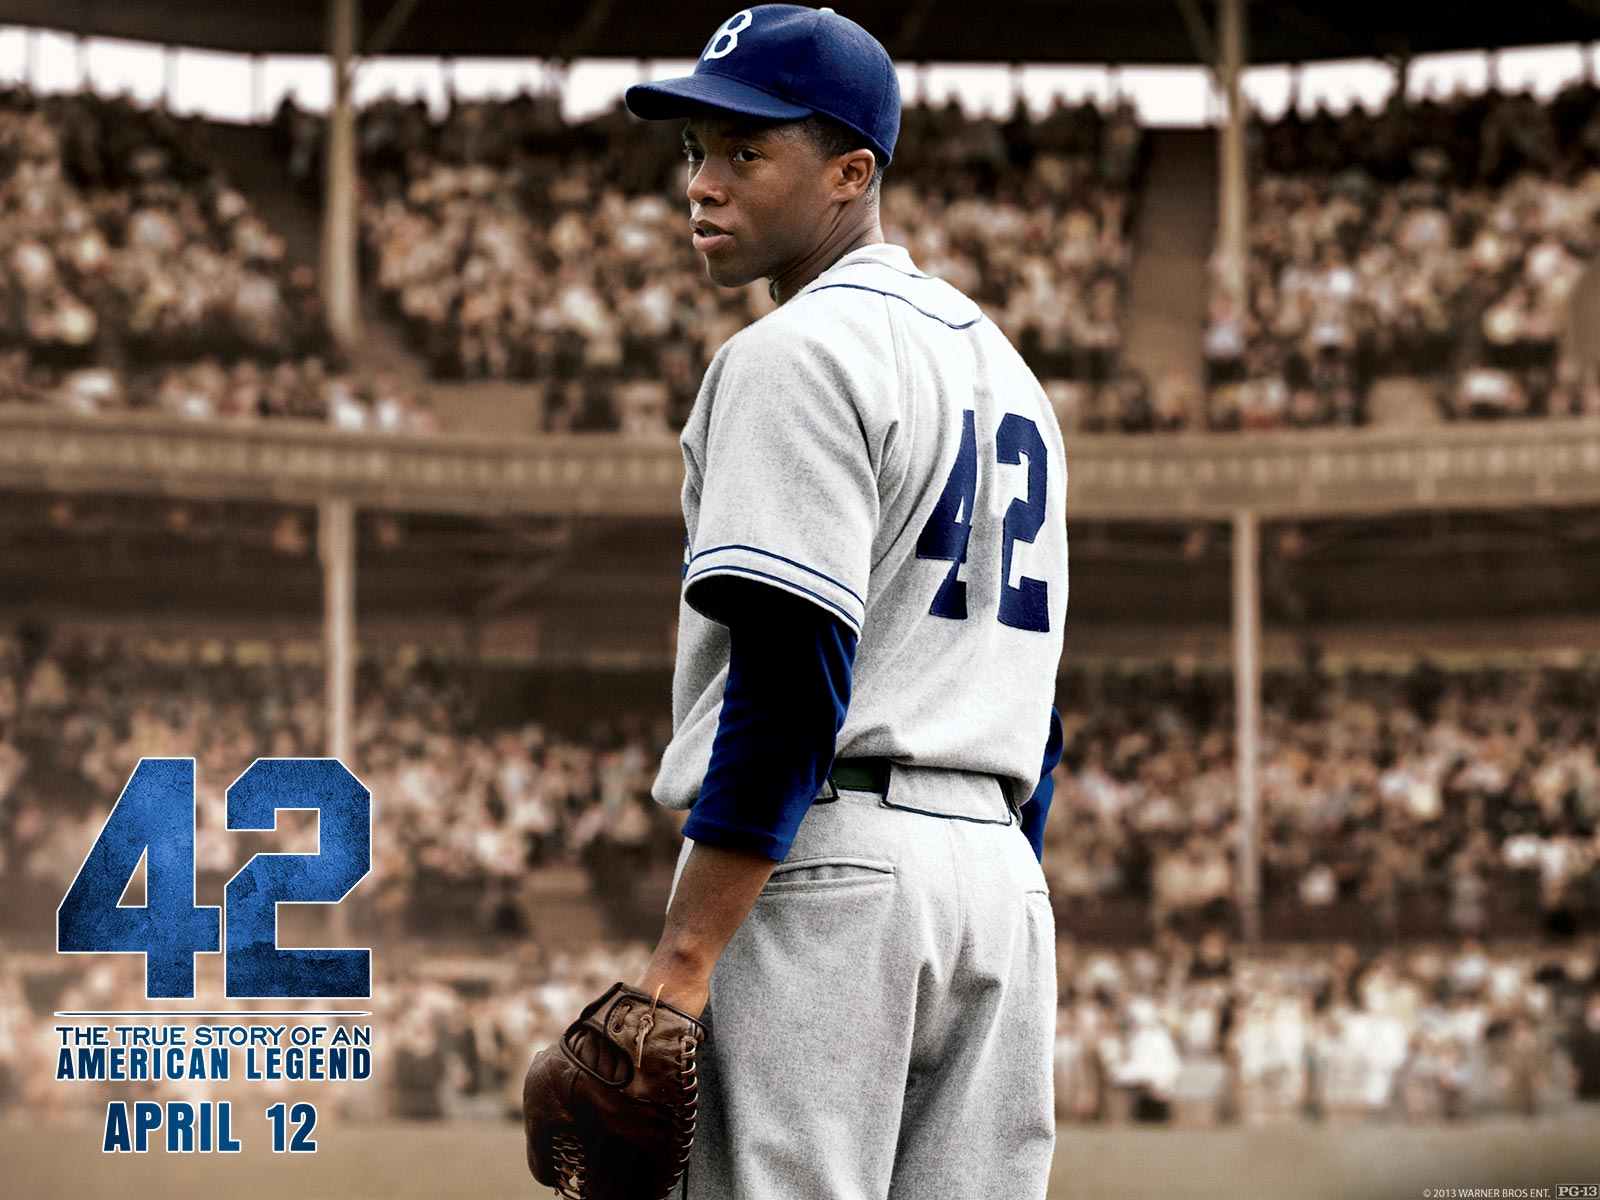 Jackie Robinson's faith missing from '42' movie | Religion ...